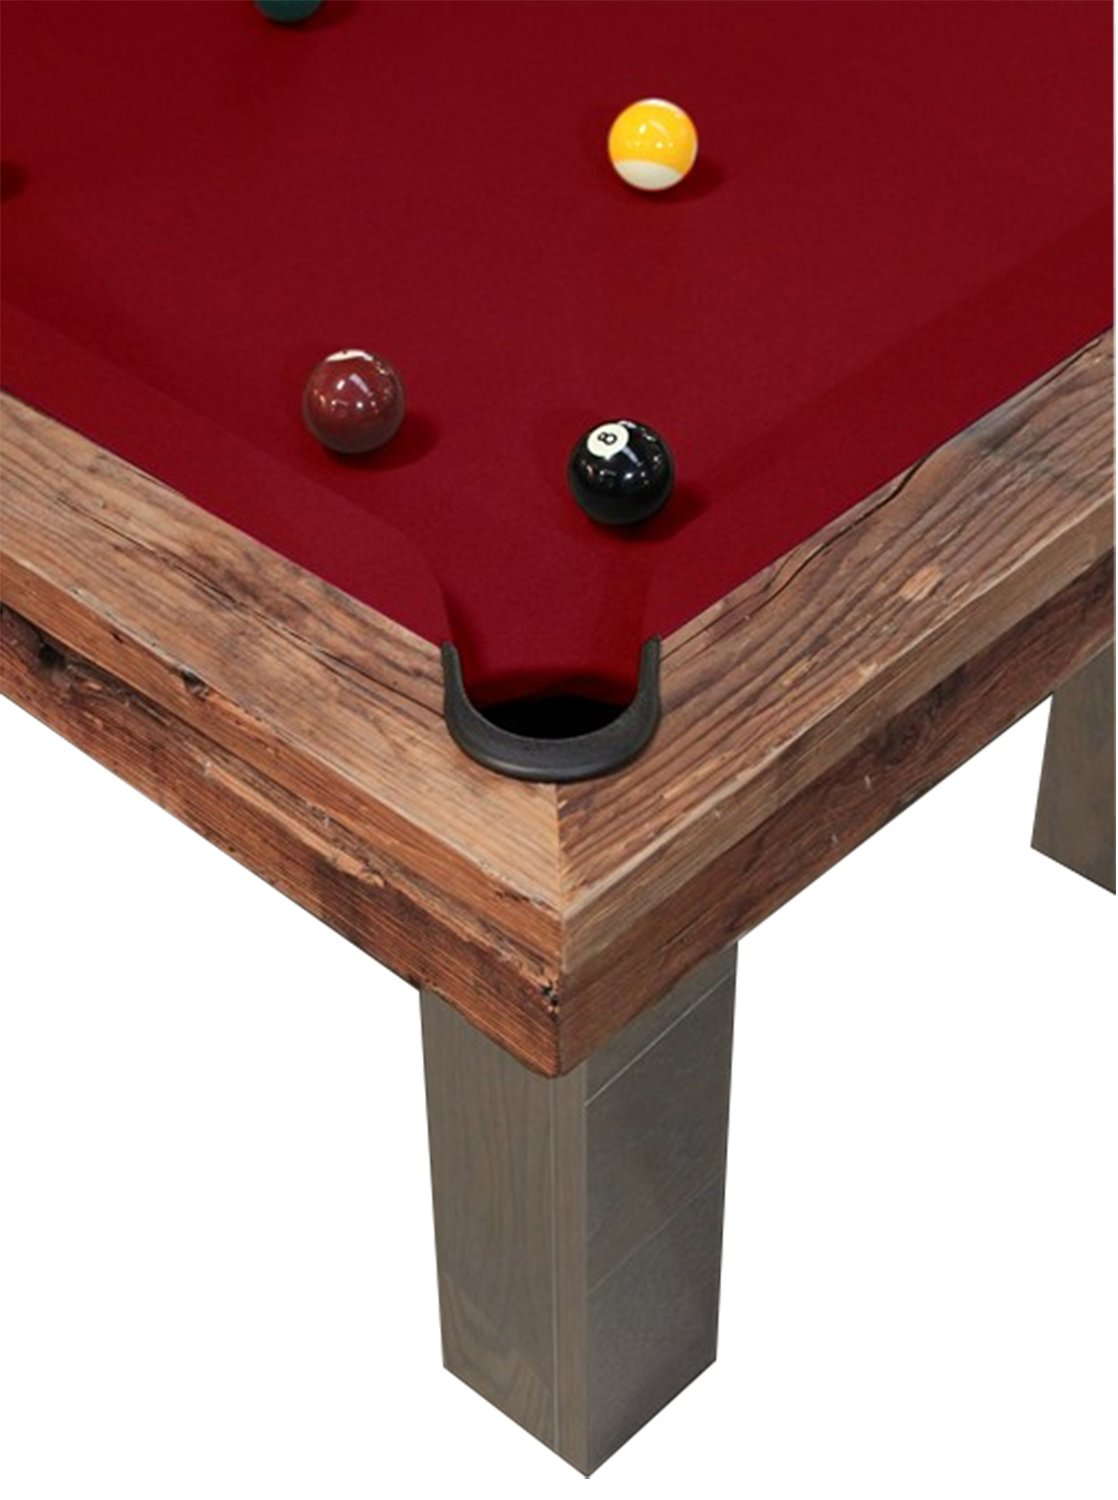 billard toulet megeve pool table 7 ft 8 ft 9 ft. Black Bedroom Furniture Sets. Home Design Ideas